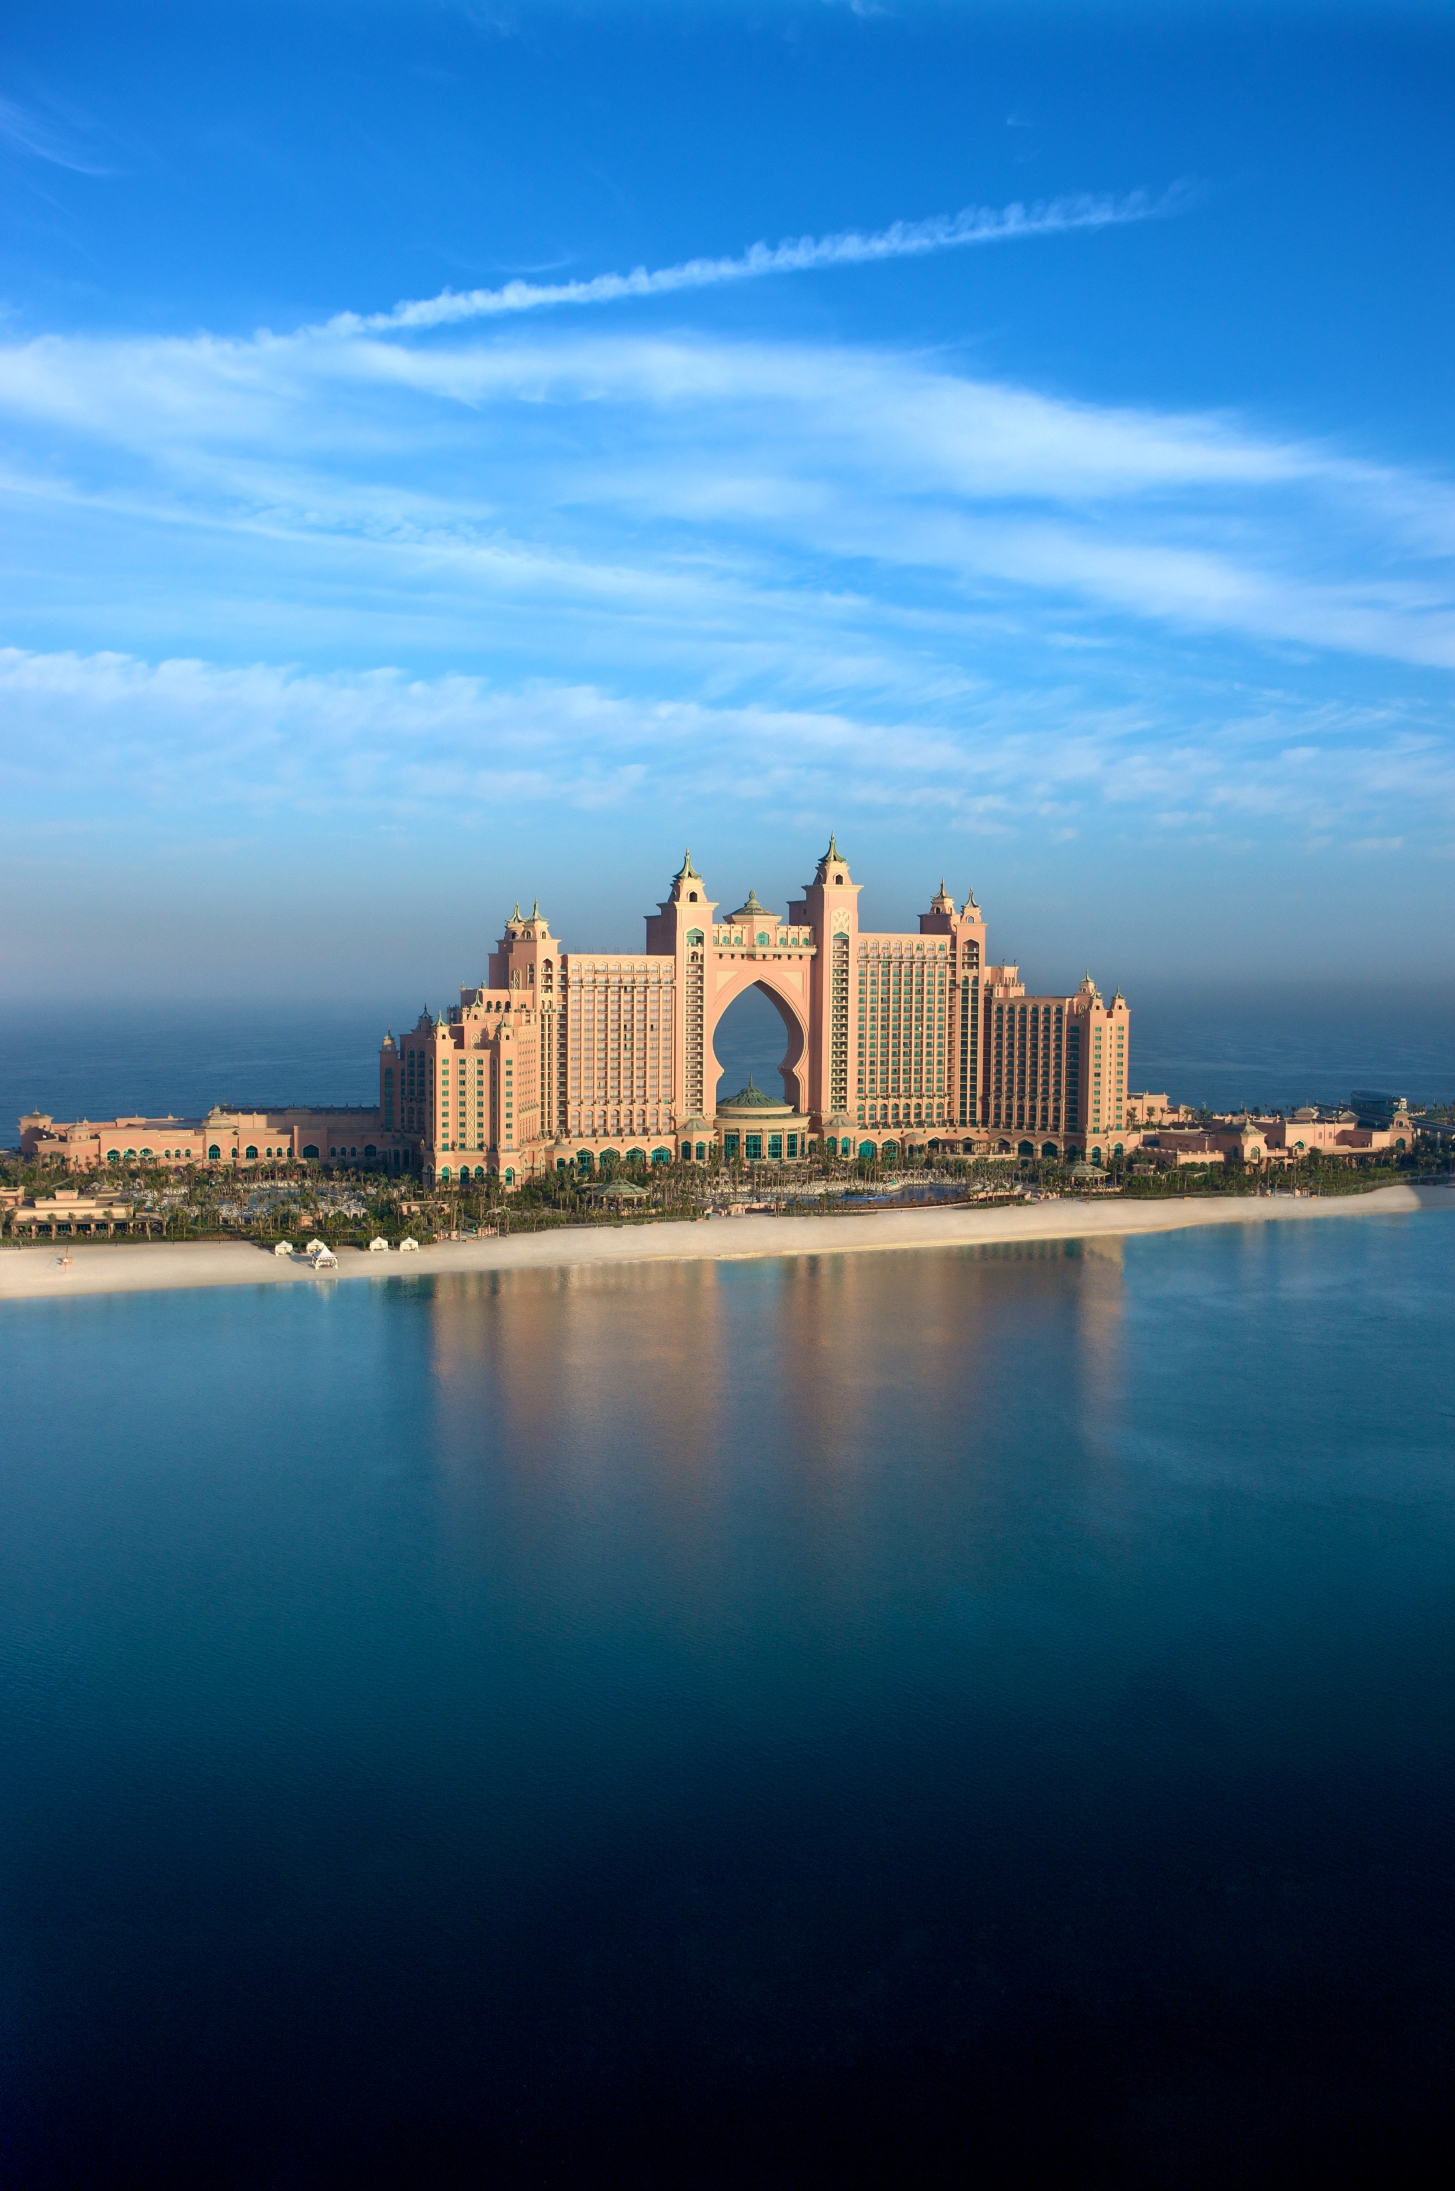 atlantis palm hotel dubai lifestyle amour. Black Bedroom Furniture Sets. Home Design Ideas